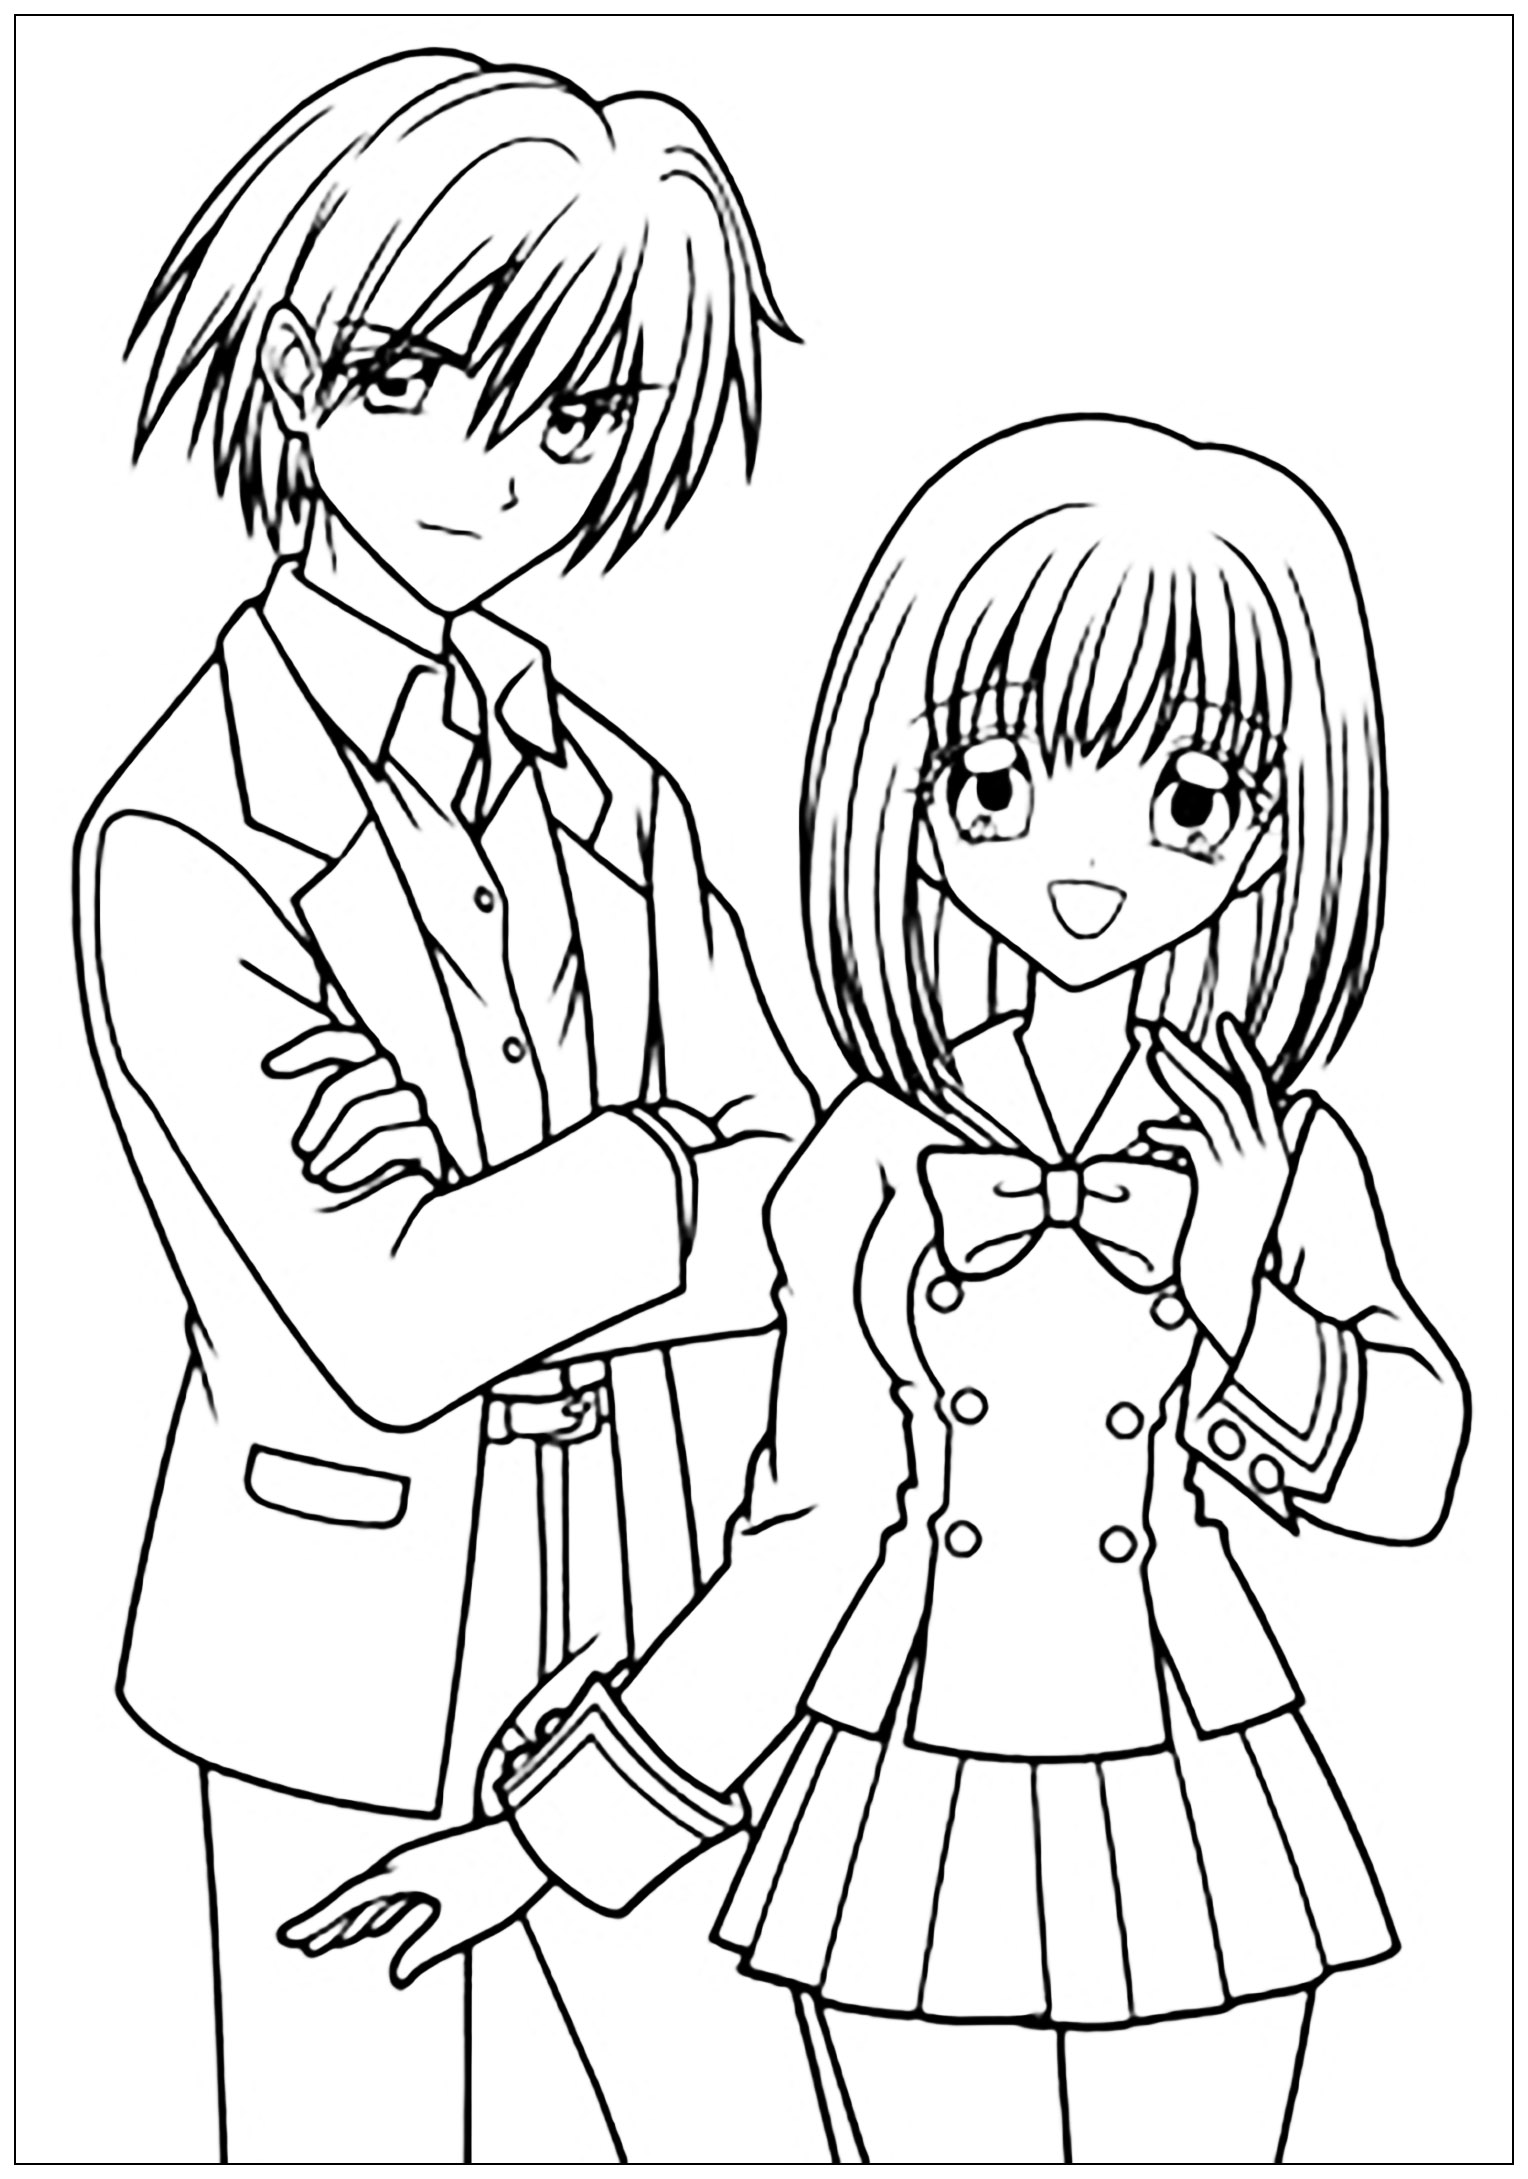 anime school boy coloring pages - photo#3